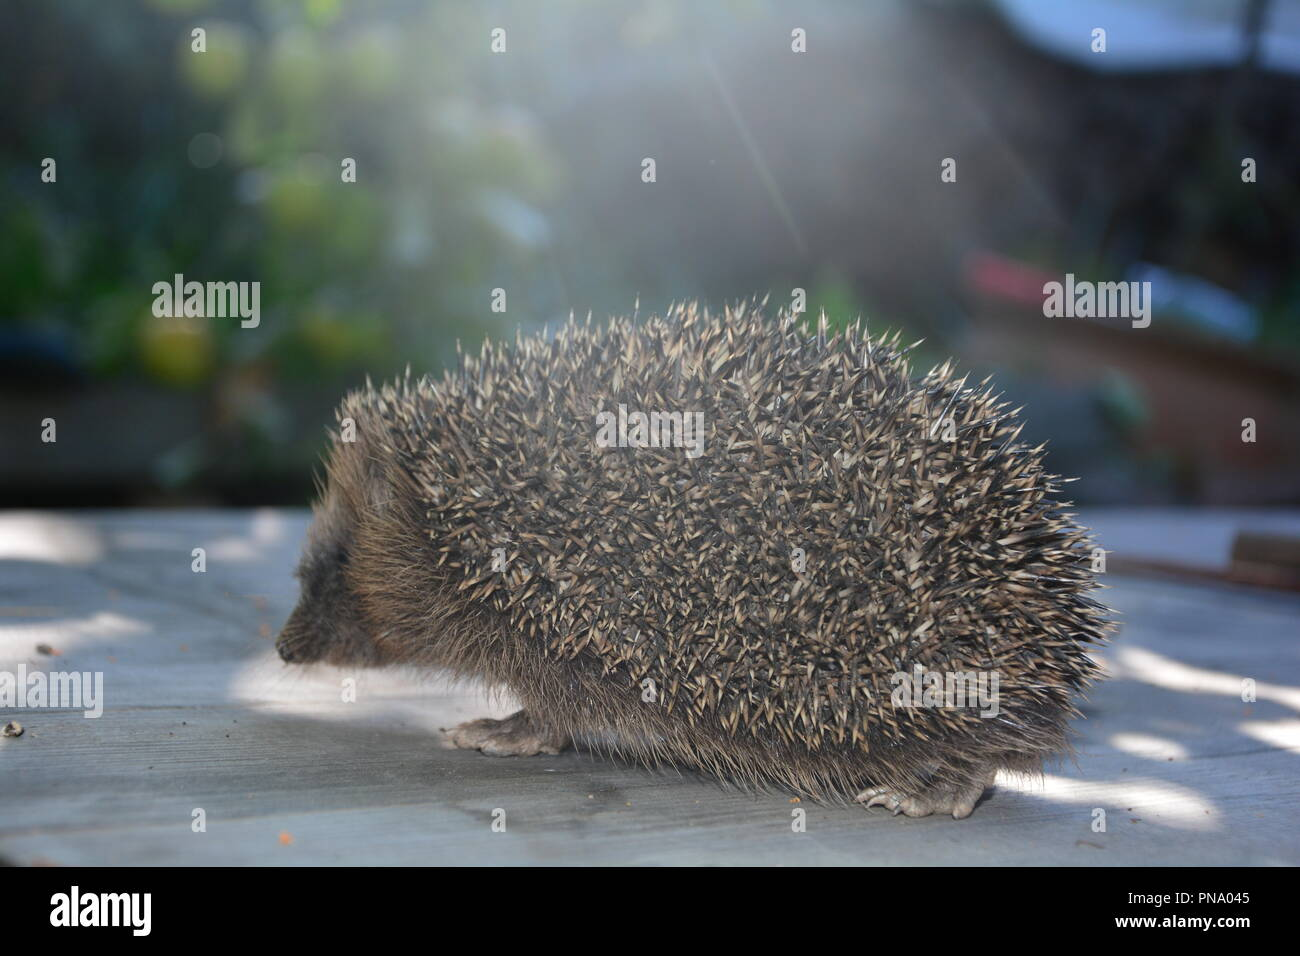 Hedgehog on wood in front of nature, run in the sunlight - Stock Image